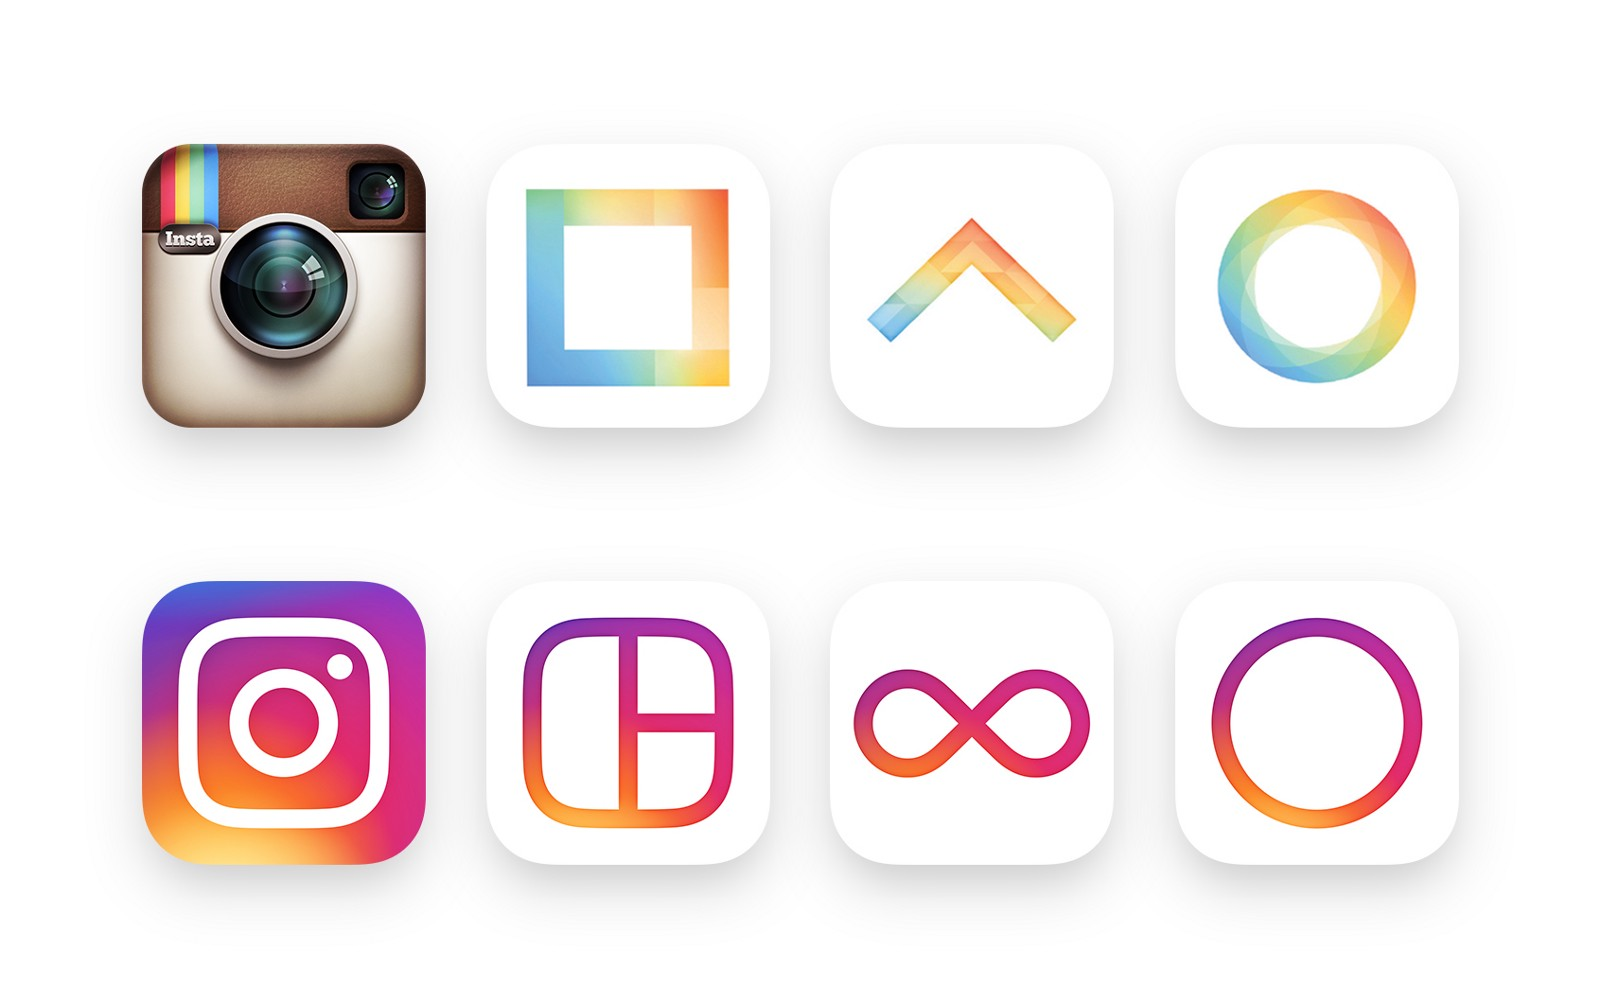 Comparison of Instagram icons before and after redesign